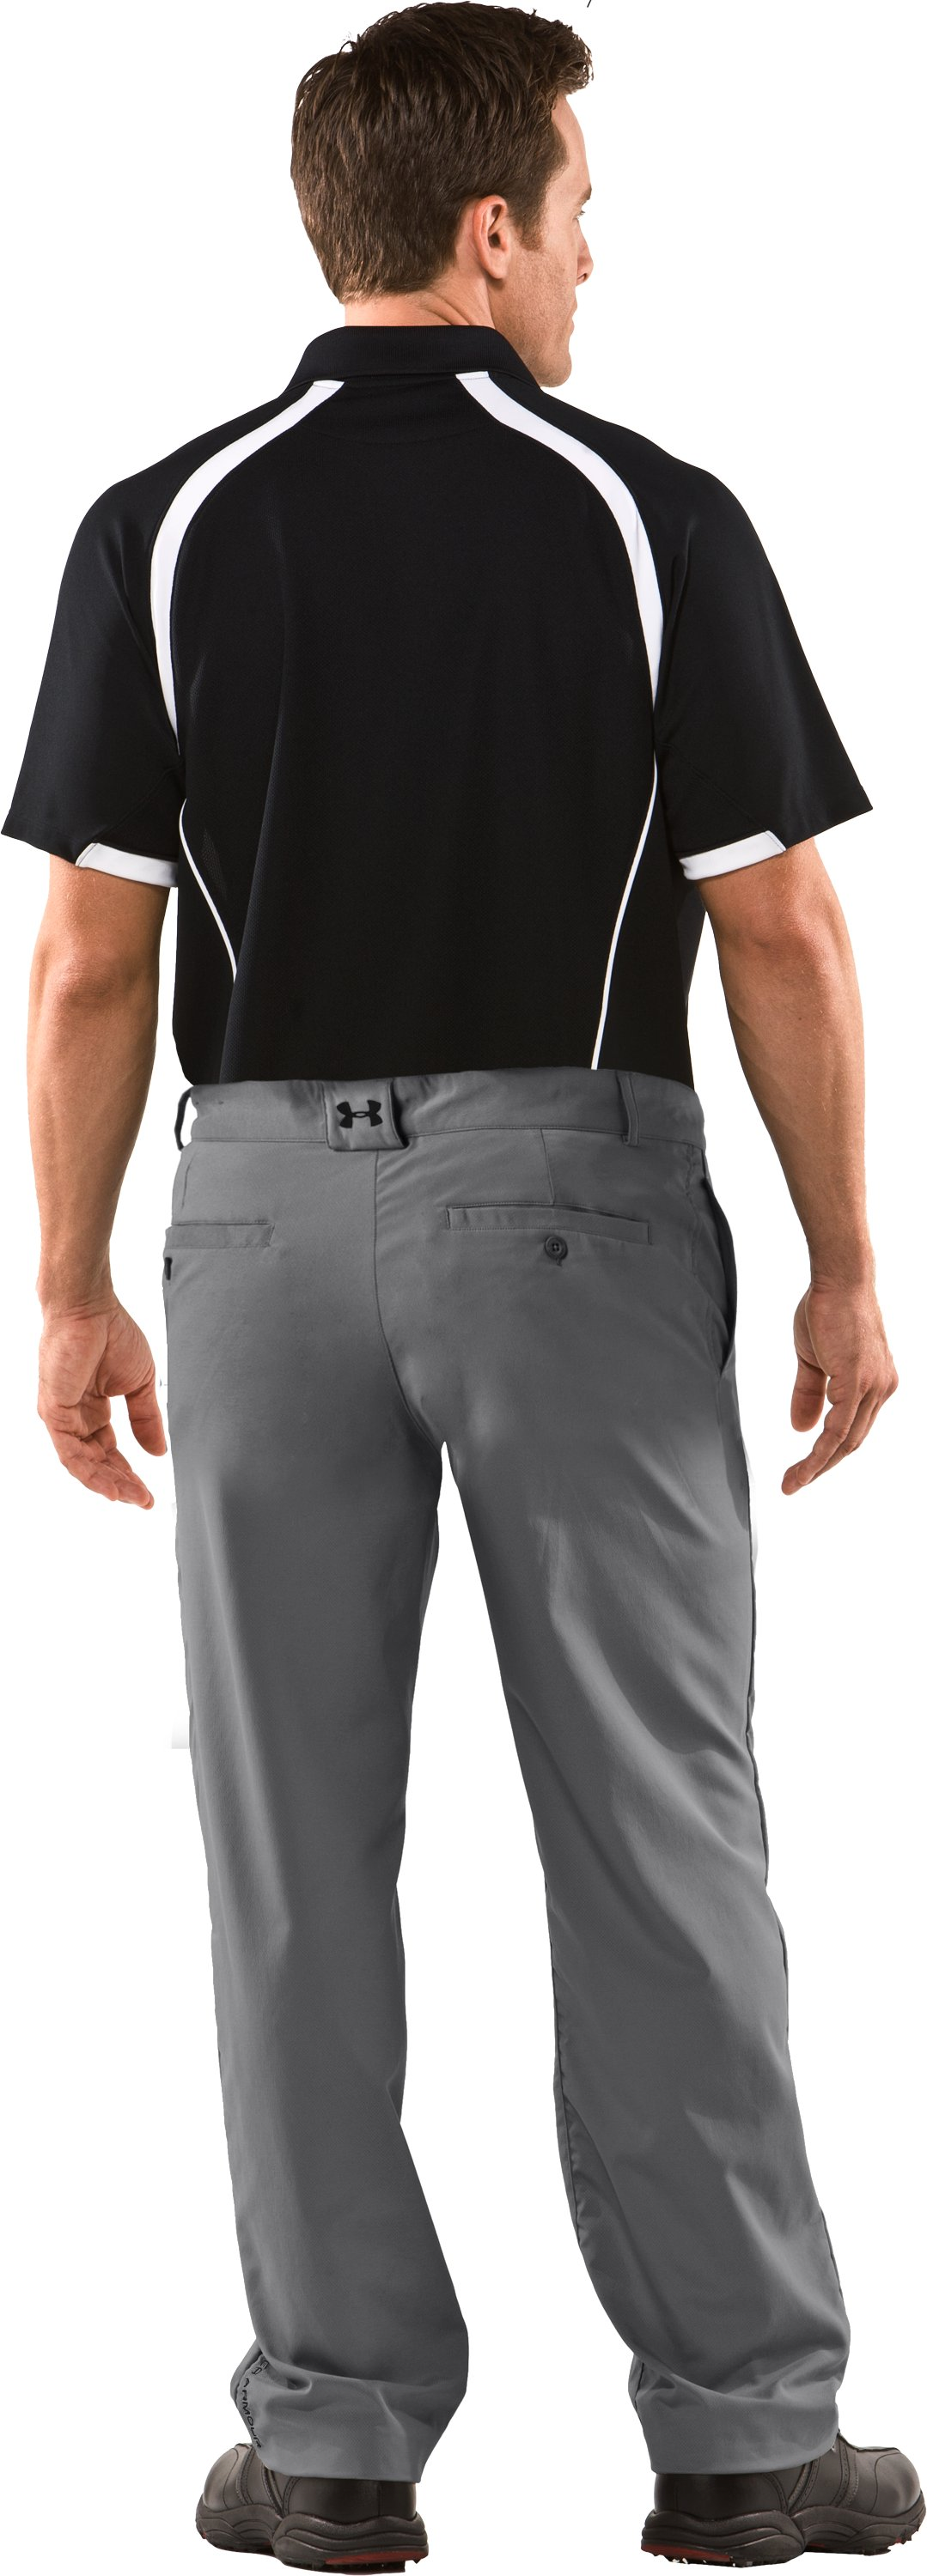 Men's Performance Flat Front Pants, Graphite, Back